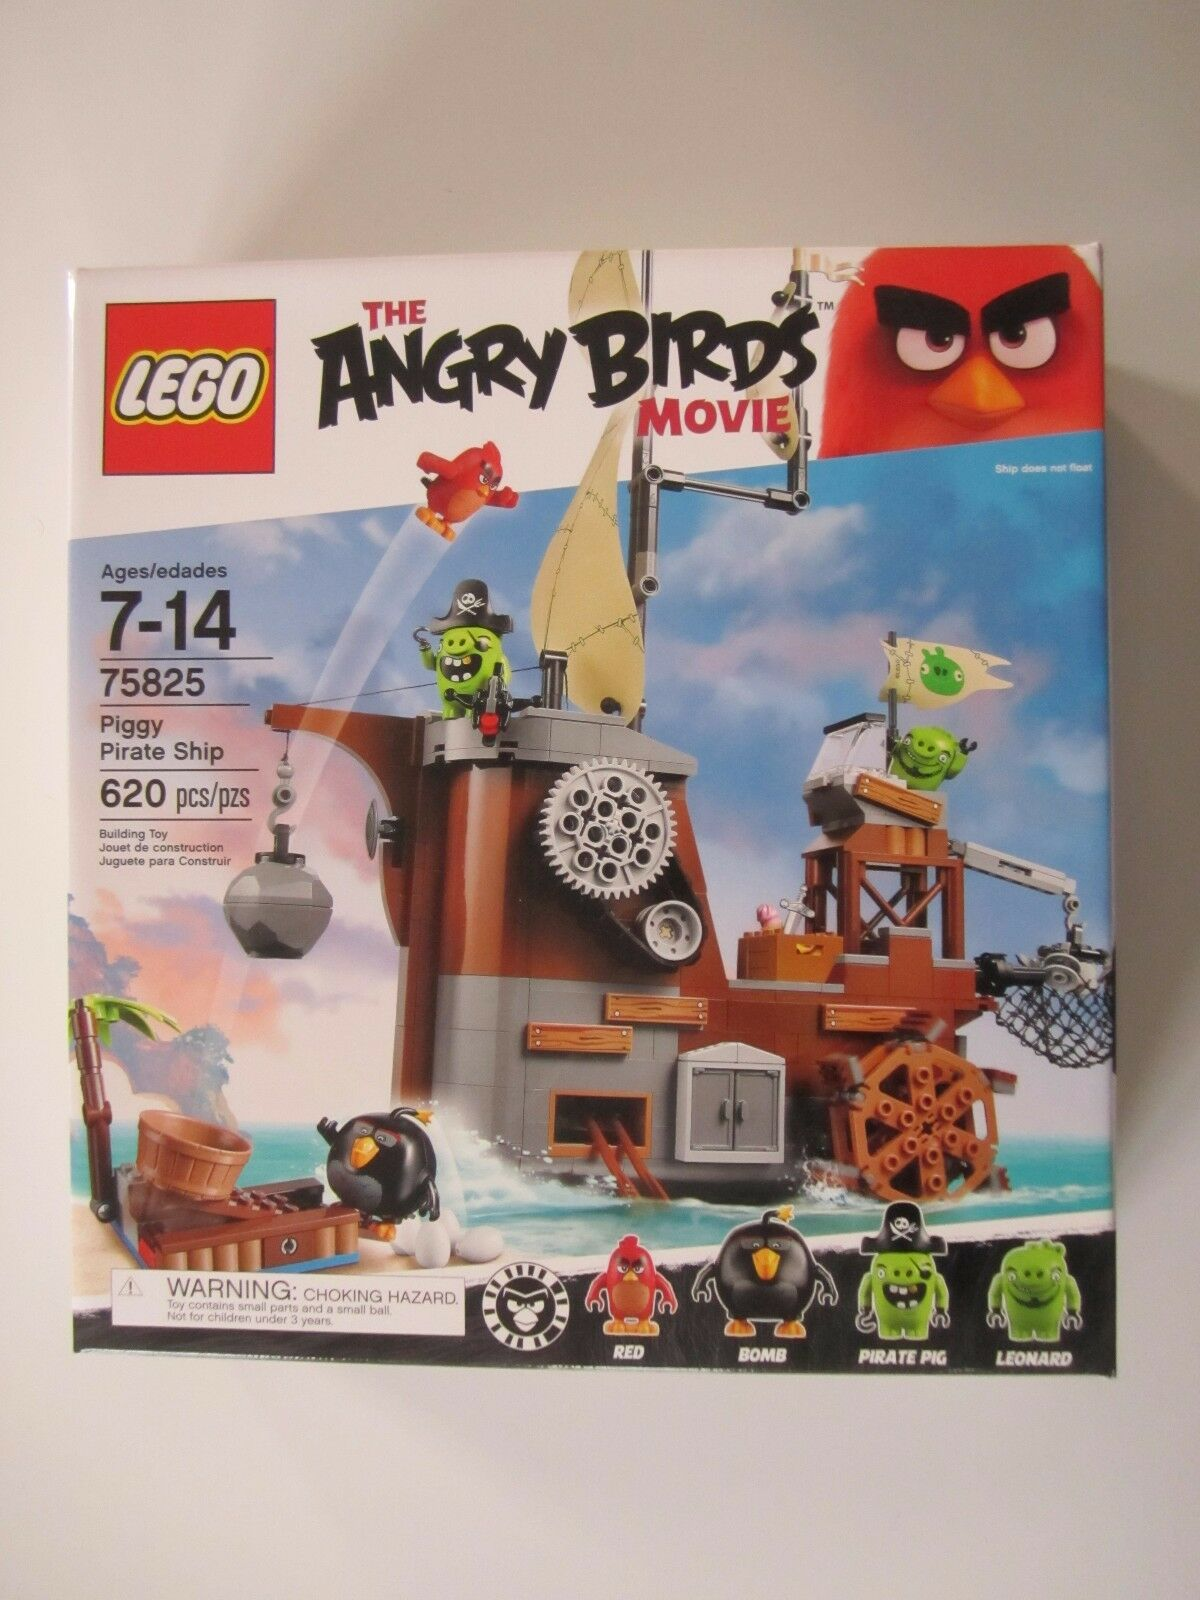 75825 LEGO The Angry Birds Movie Piggy Pirate Ship 620 Pieces Sealed New in Box